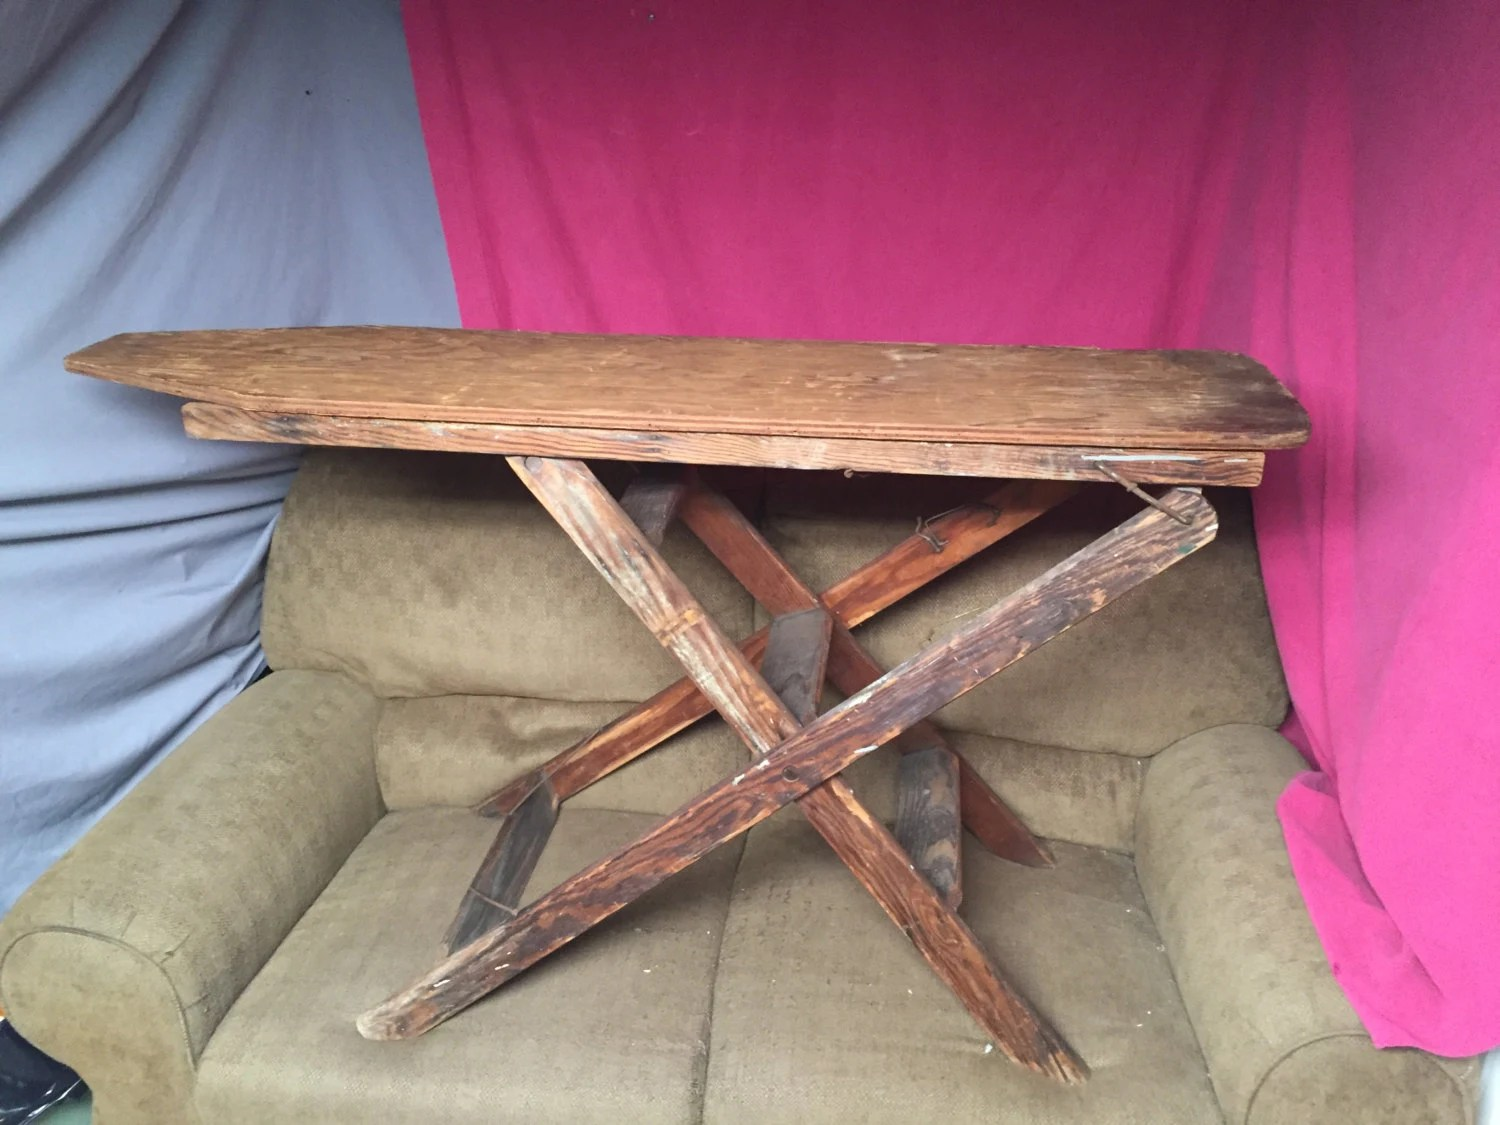 chair step stool ironing board fx covers eu vintage primitive wooden ladder